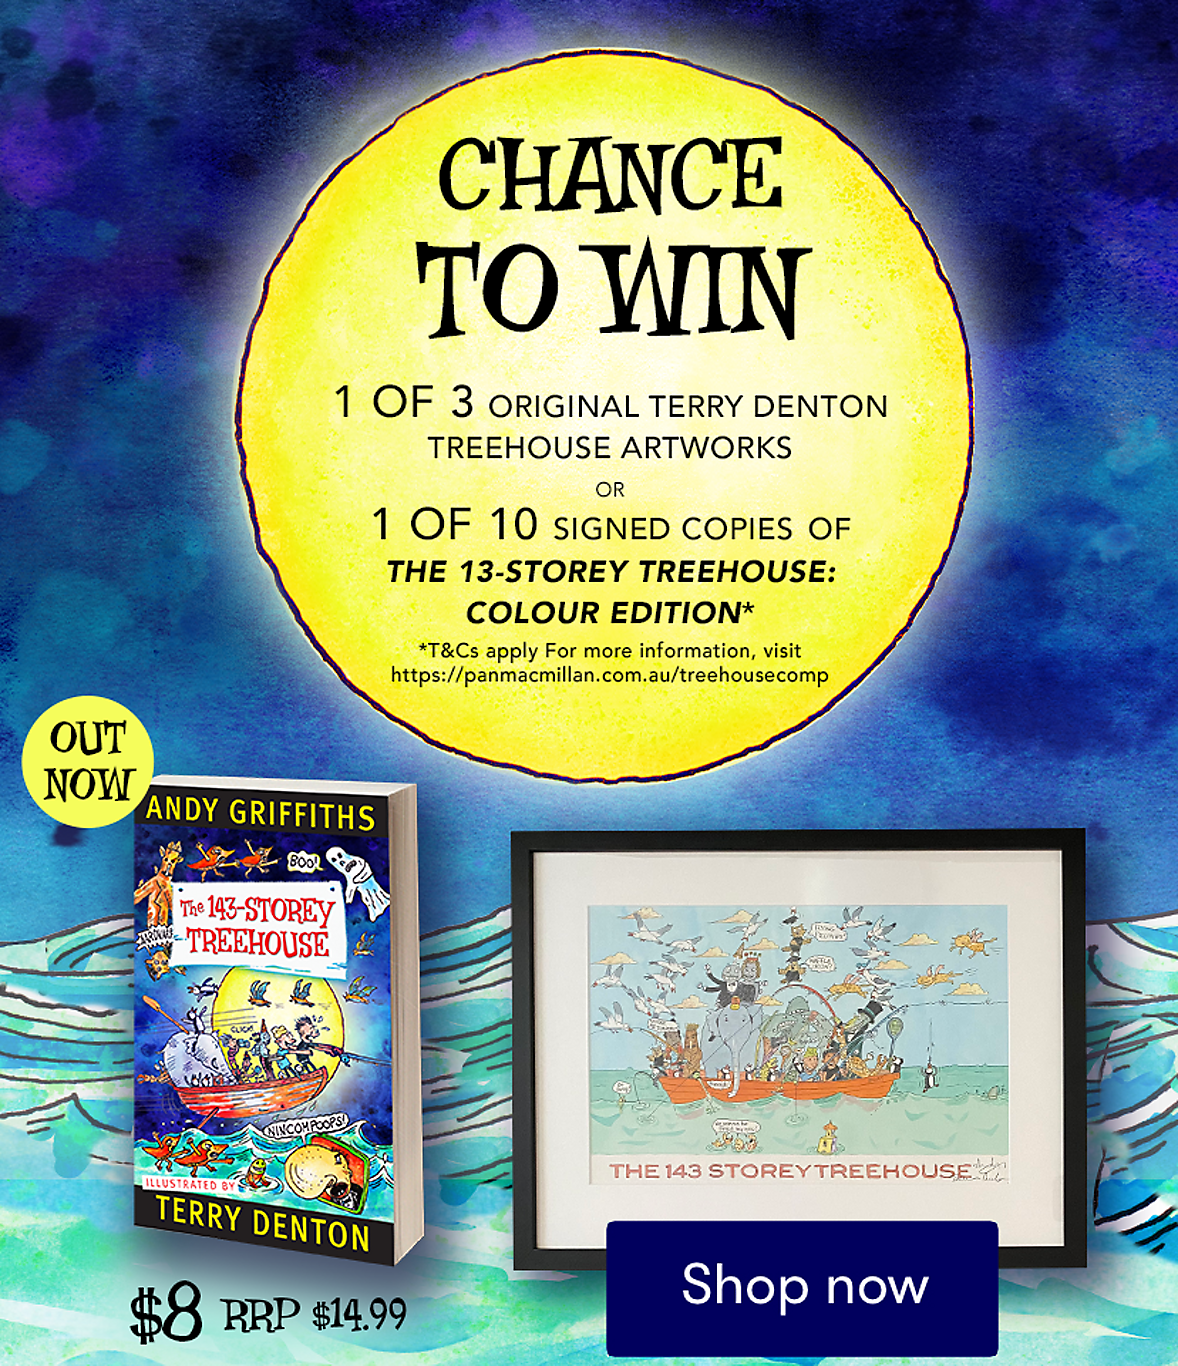 Purchase ANDY GRIFFITHS The 143-Storey Treehouse for your chance to win.